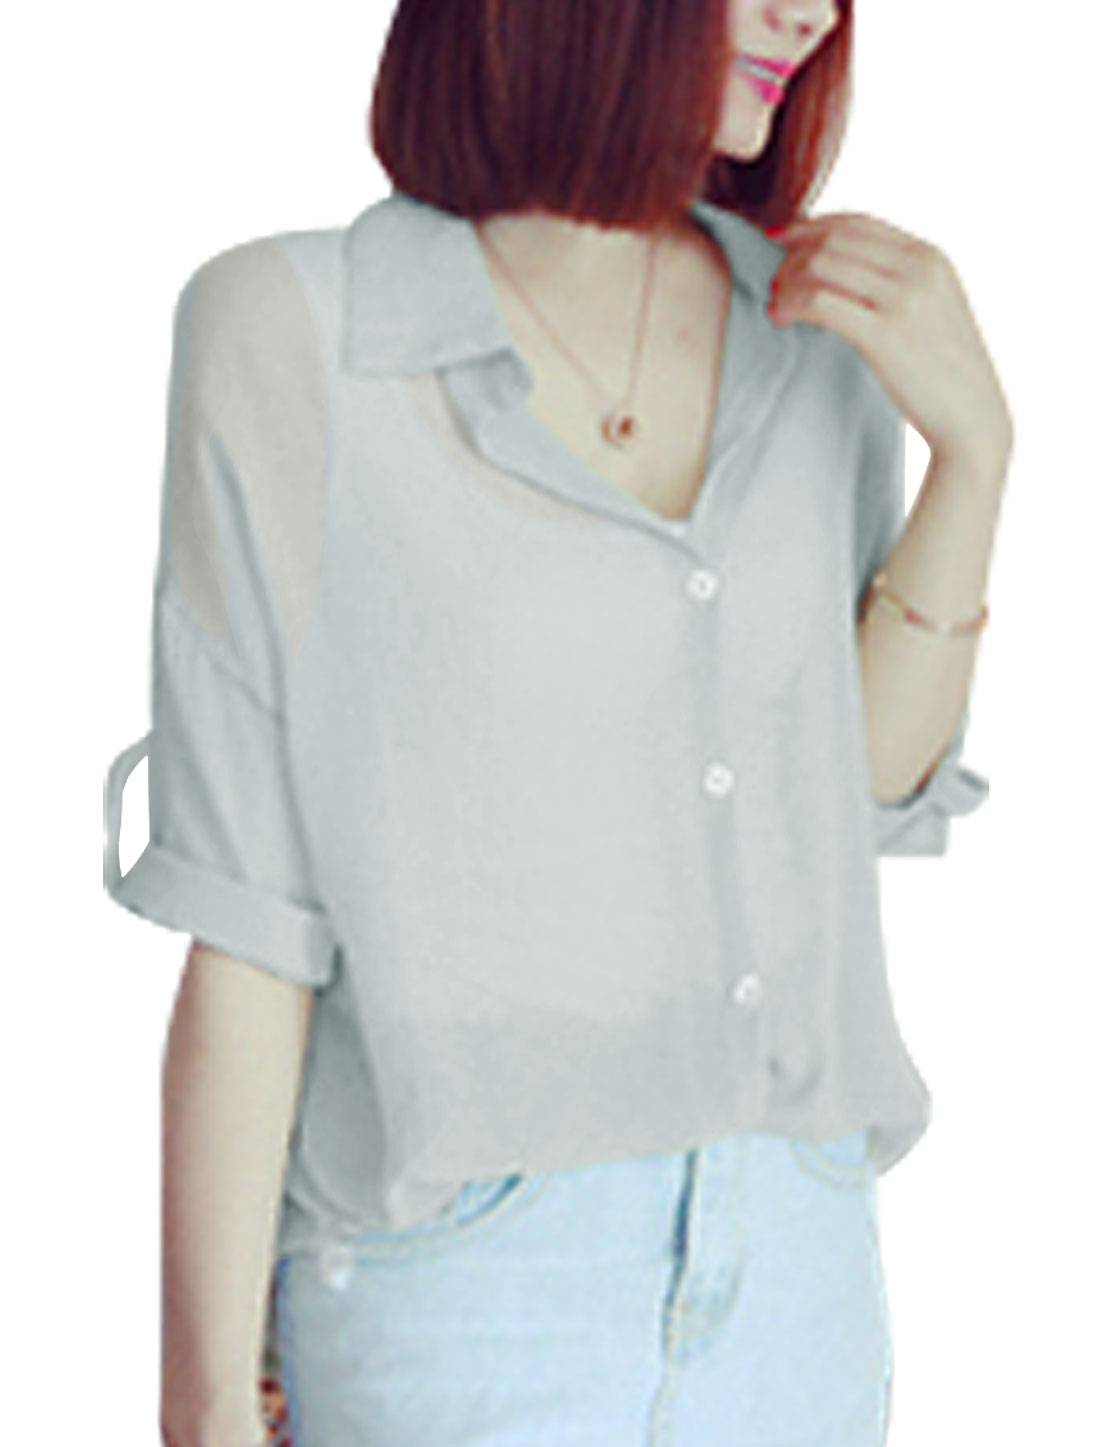 Woman Roll Up Sleeves Round Hem Button Down Leisure Shirt Light Gray XS